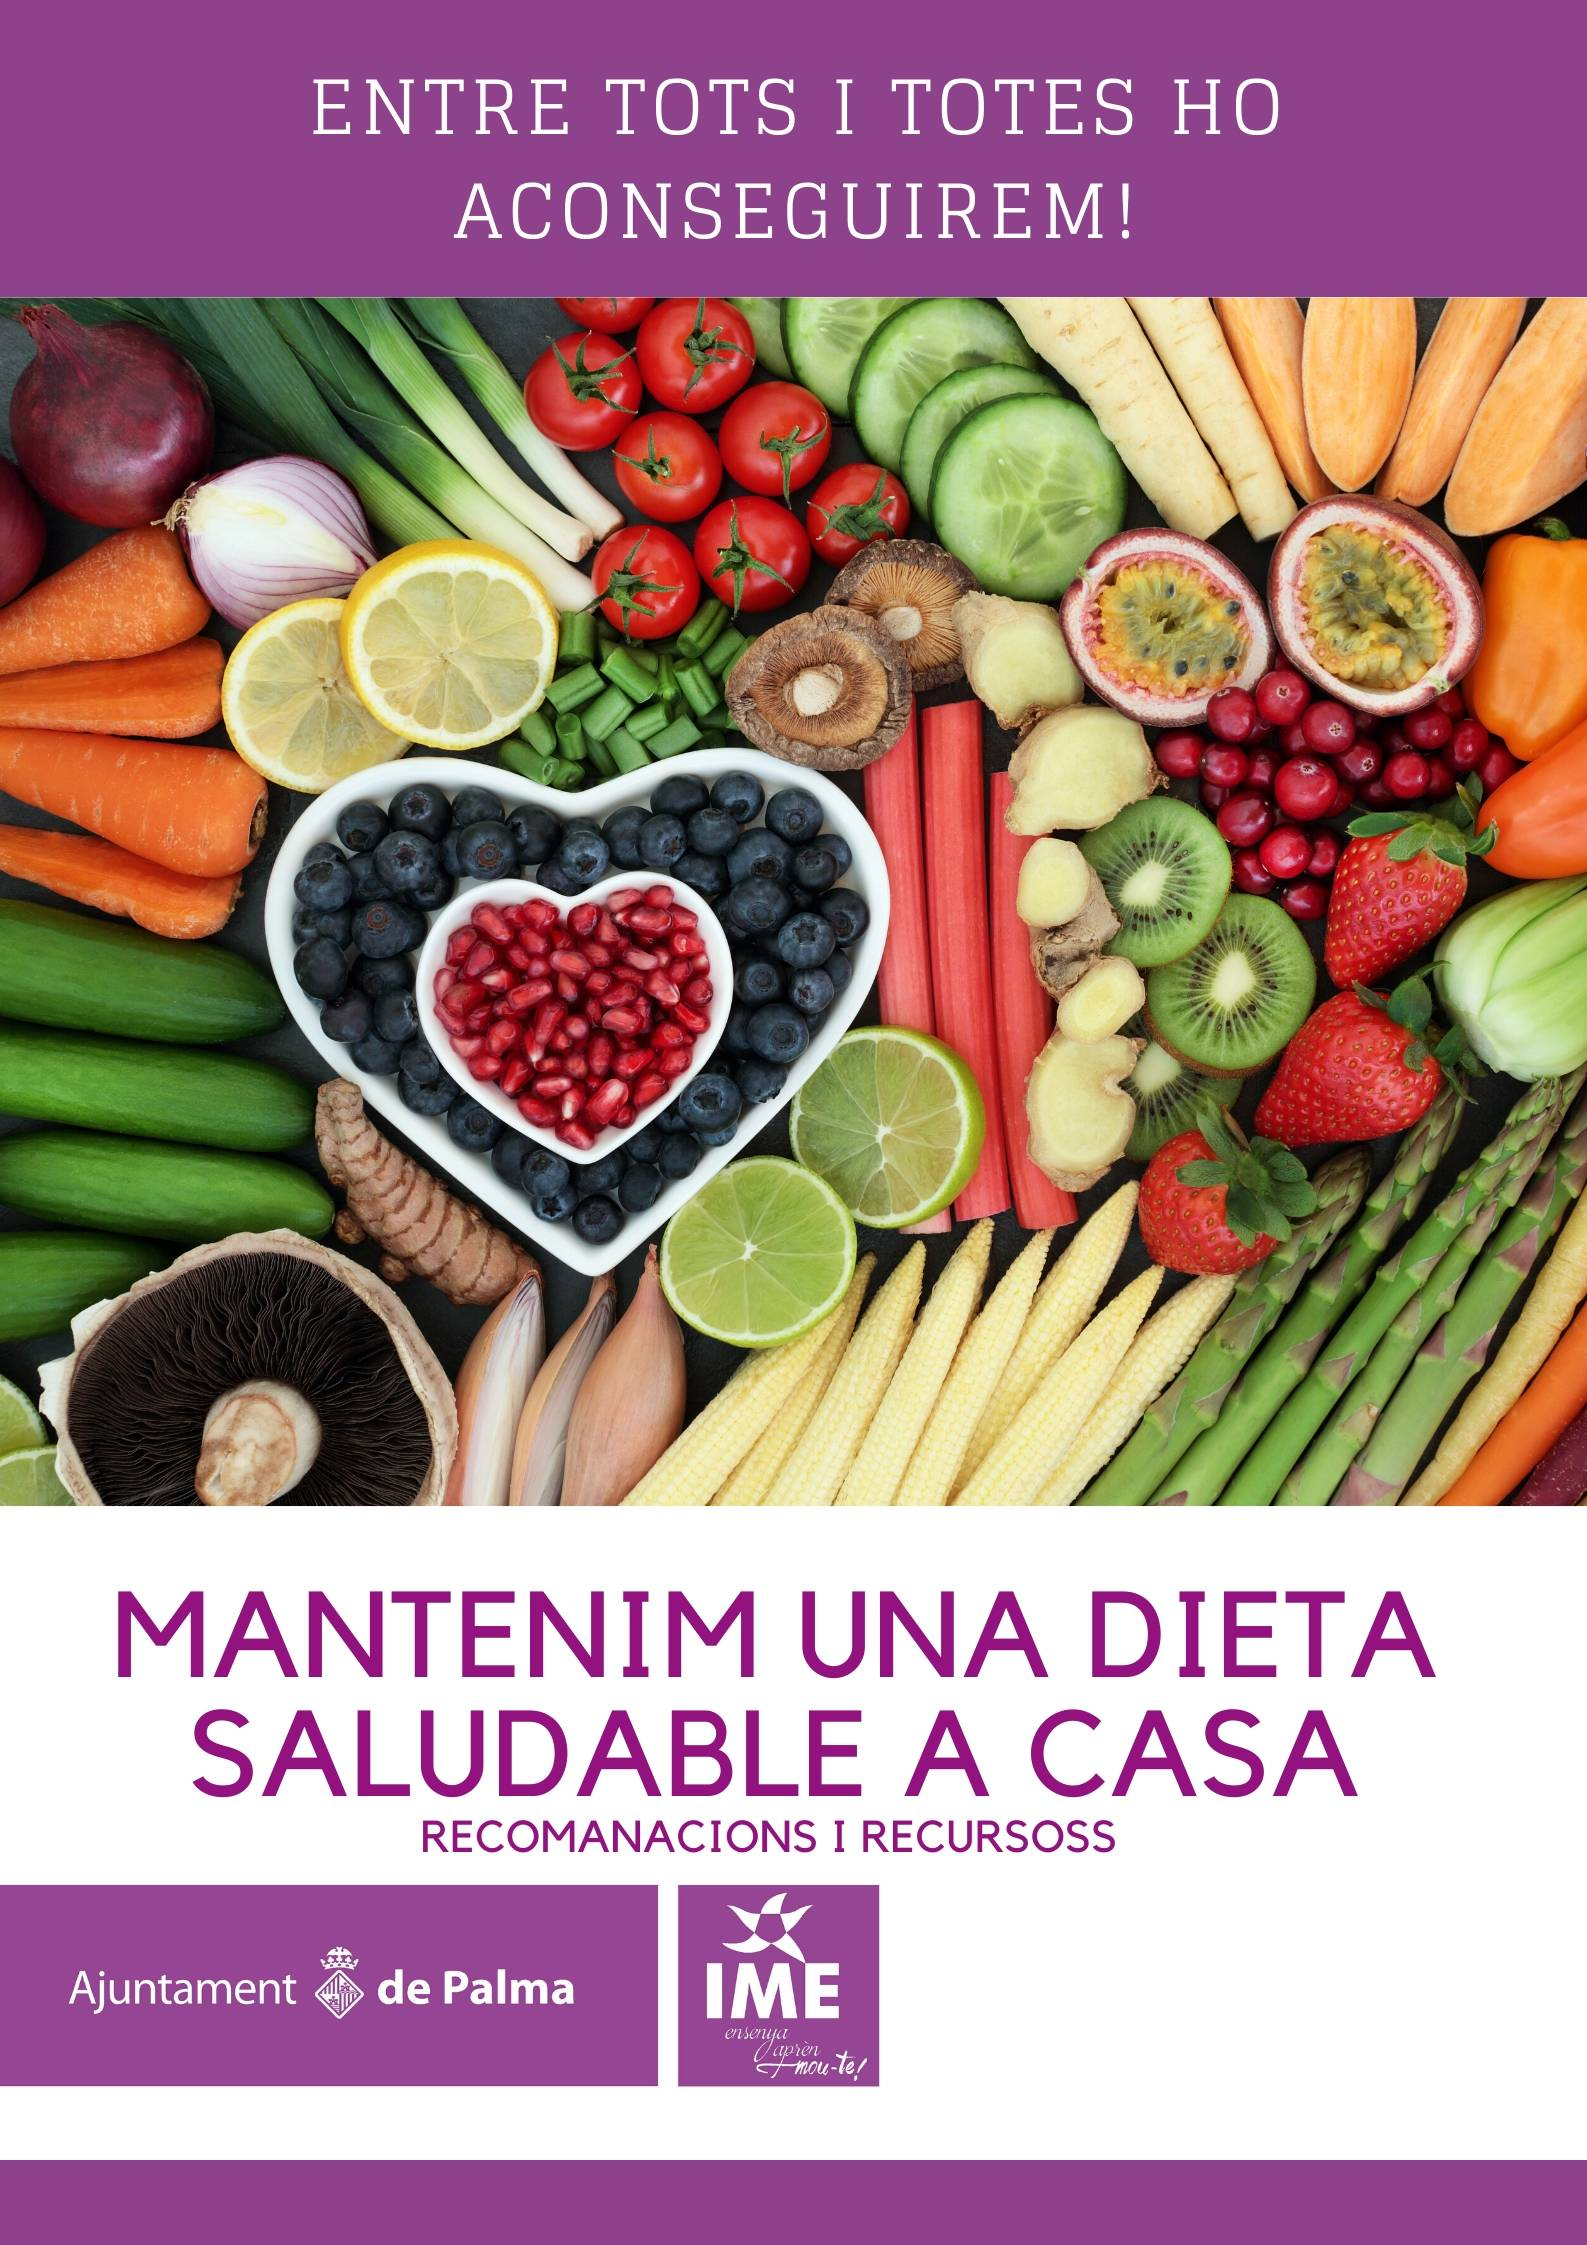 Mantenim una dieta saludable a casa